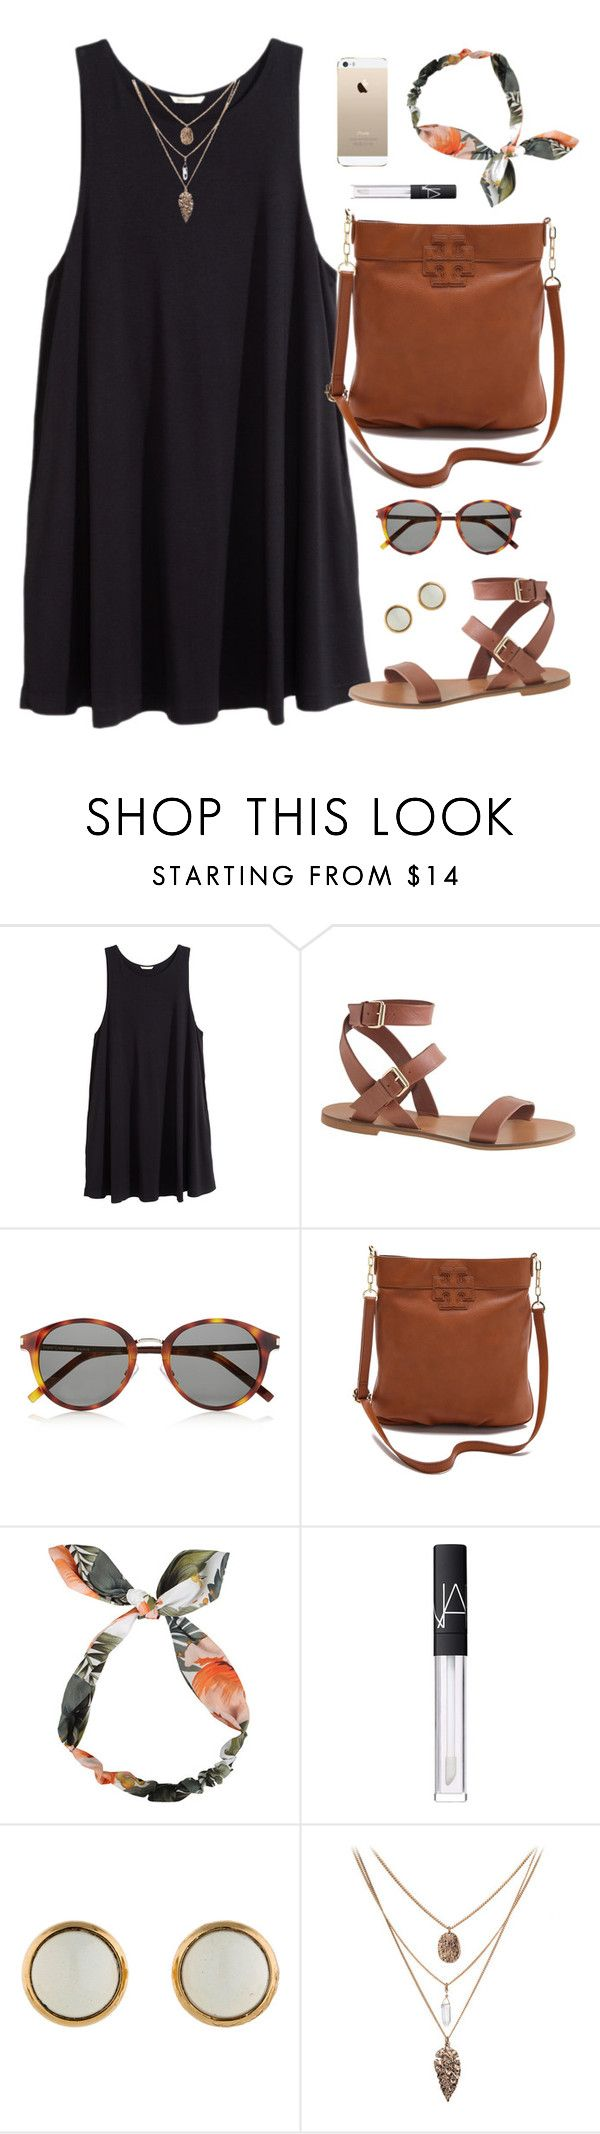 """""""headband"""" by classically-preppy ❤ liked on Polyvore featuring mode, H&M, J.Crew, Yves Saint Laurent, Tory Burch, NARS Cosmetics, Hermès, women's clothing, women et female"""